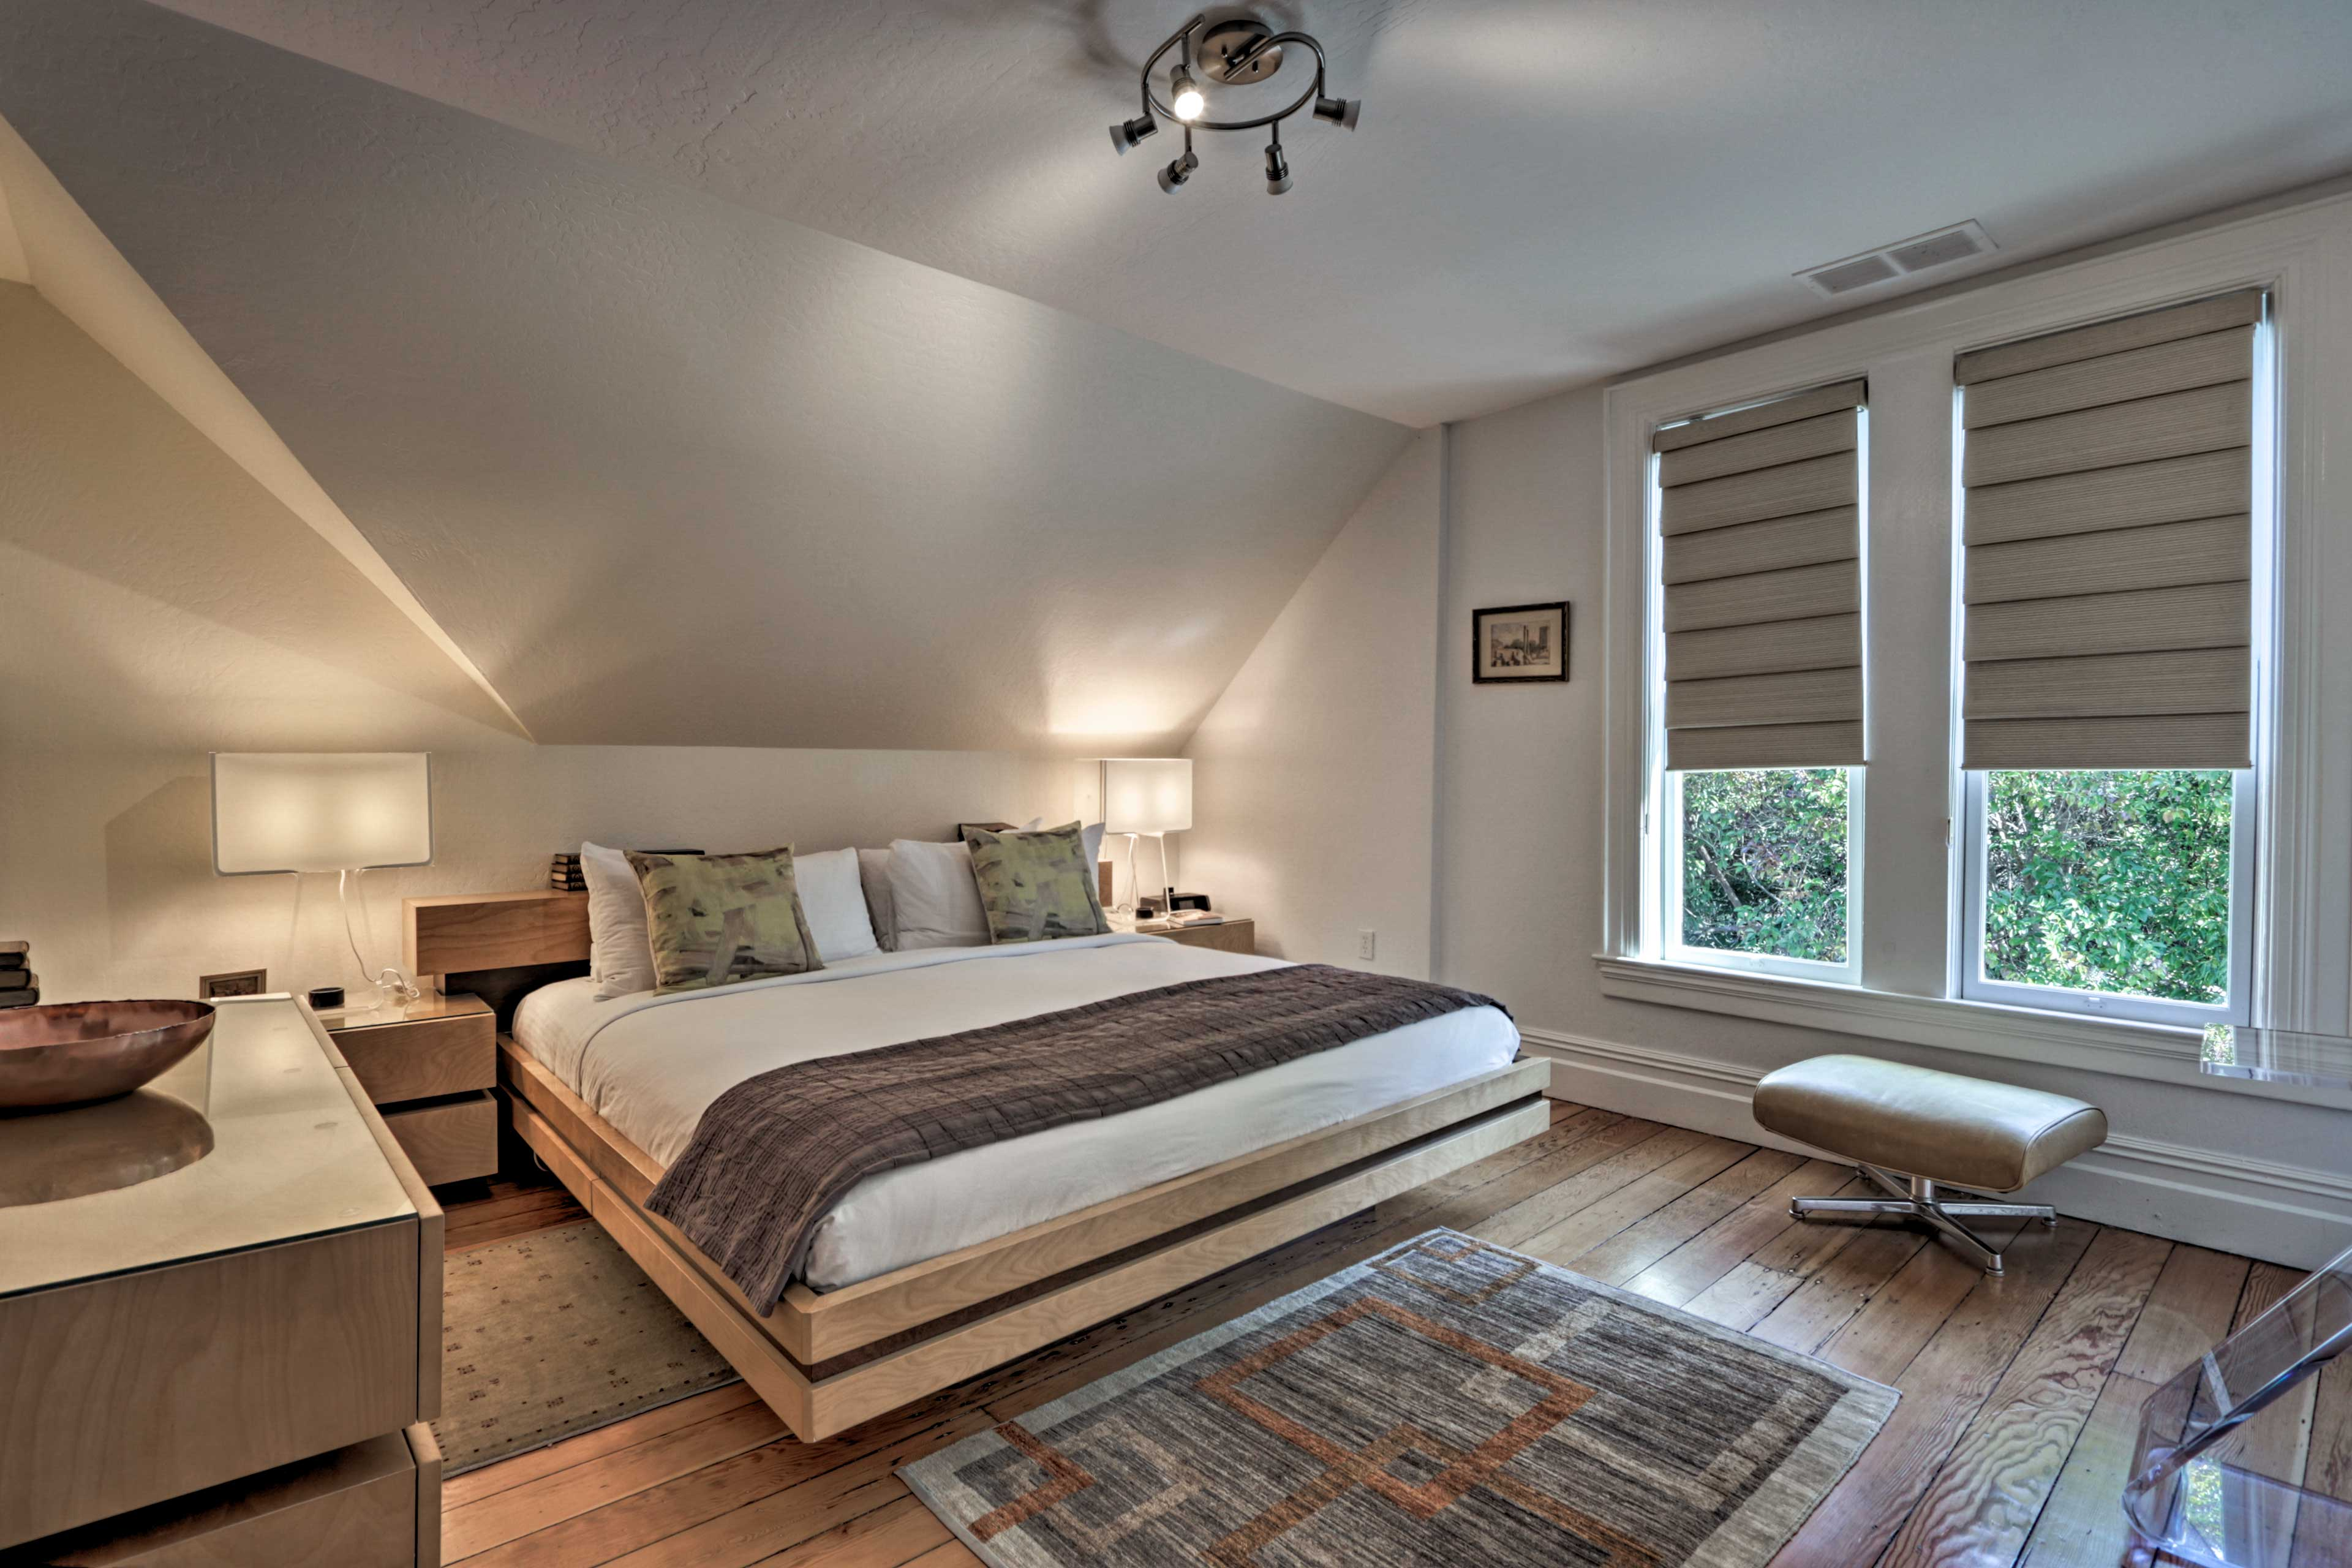 Each bedroom features hotel-like linens.